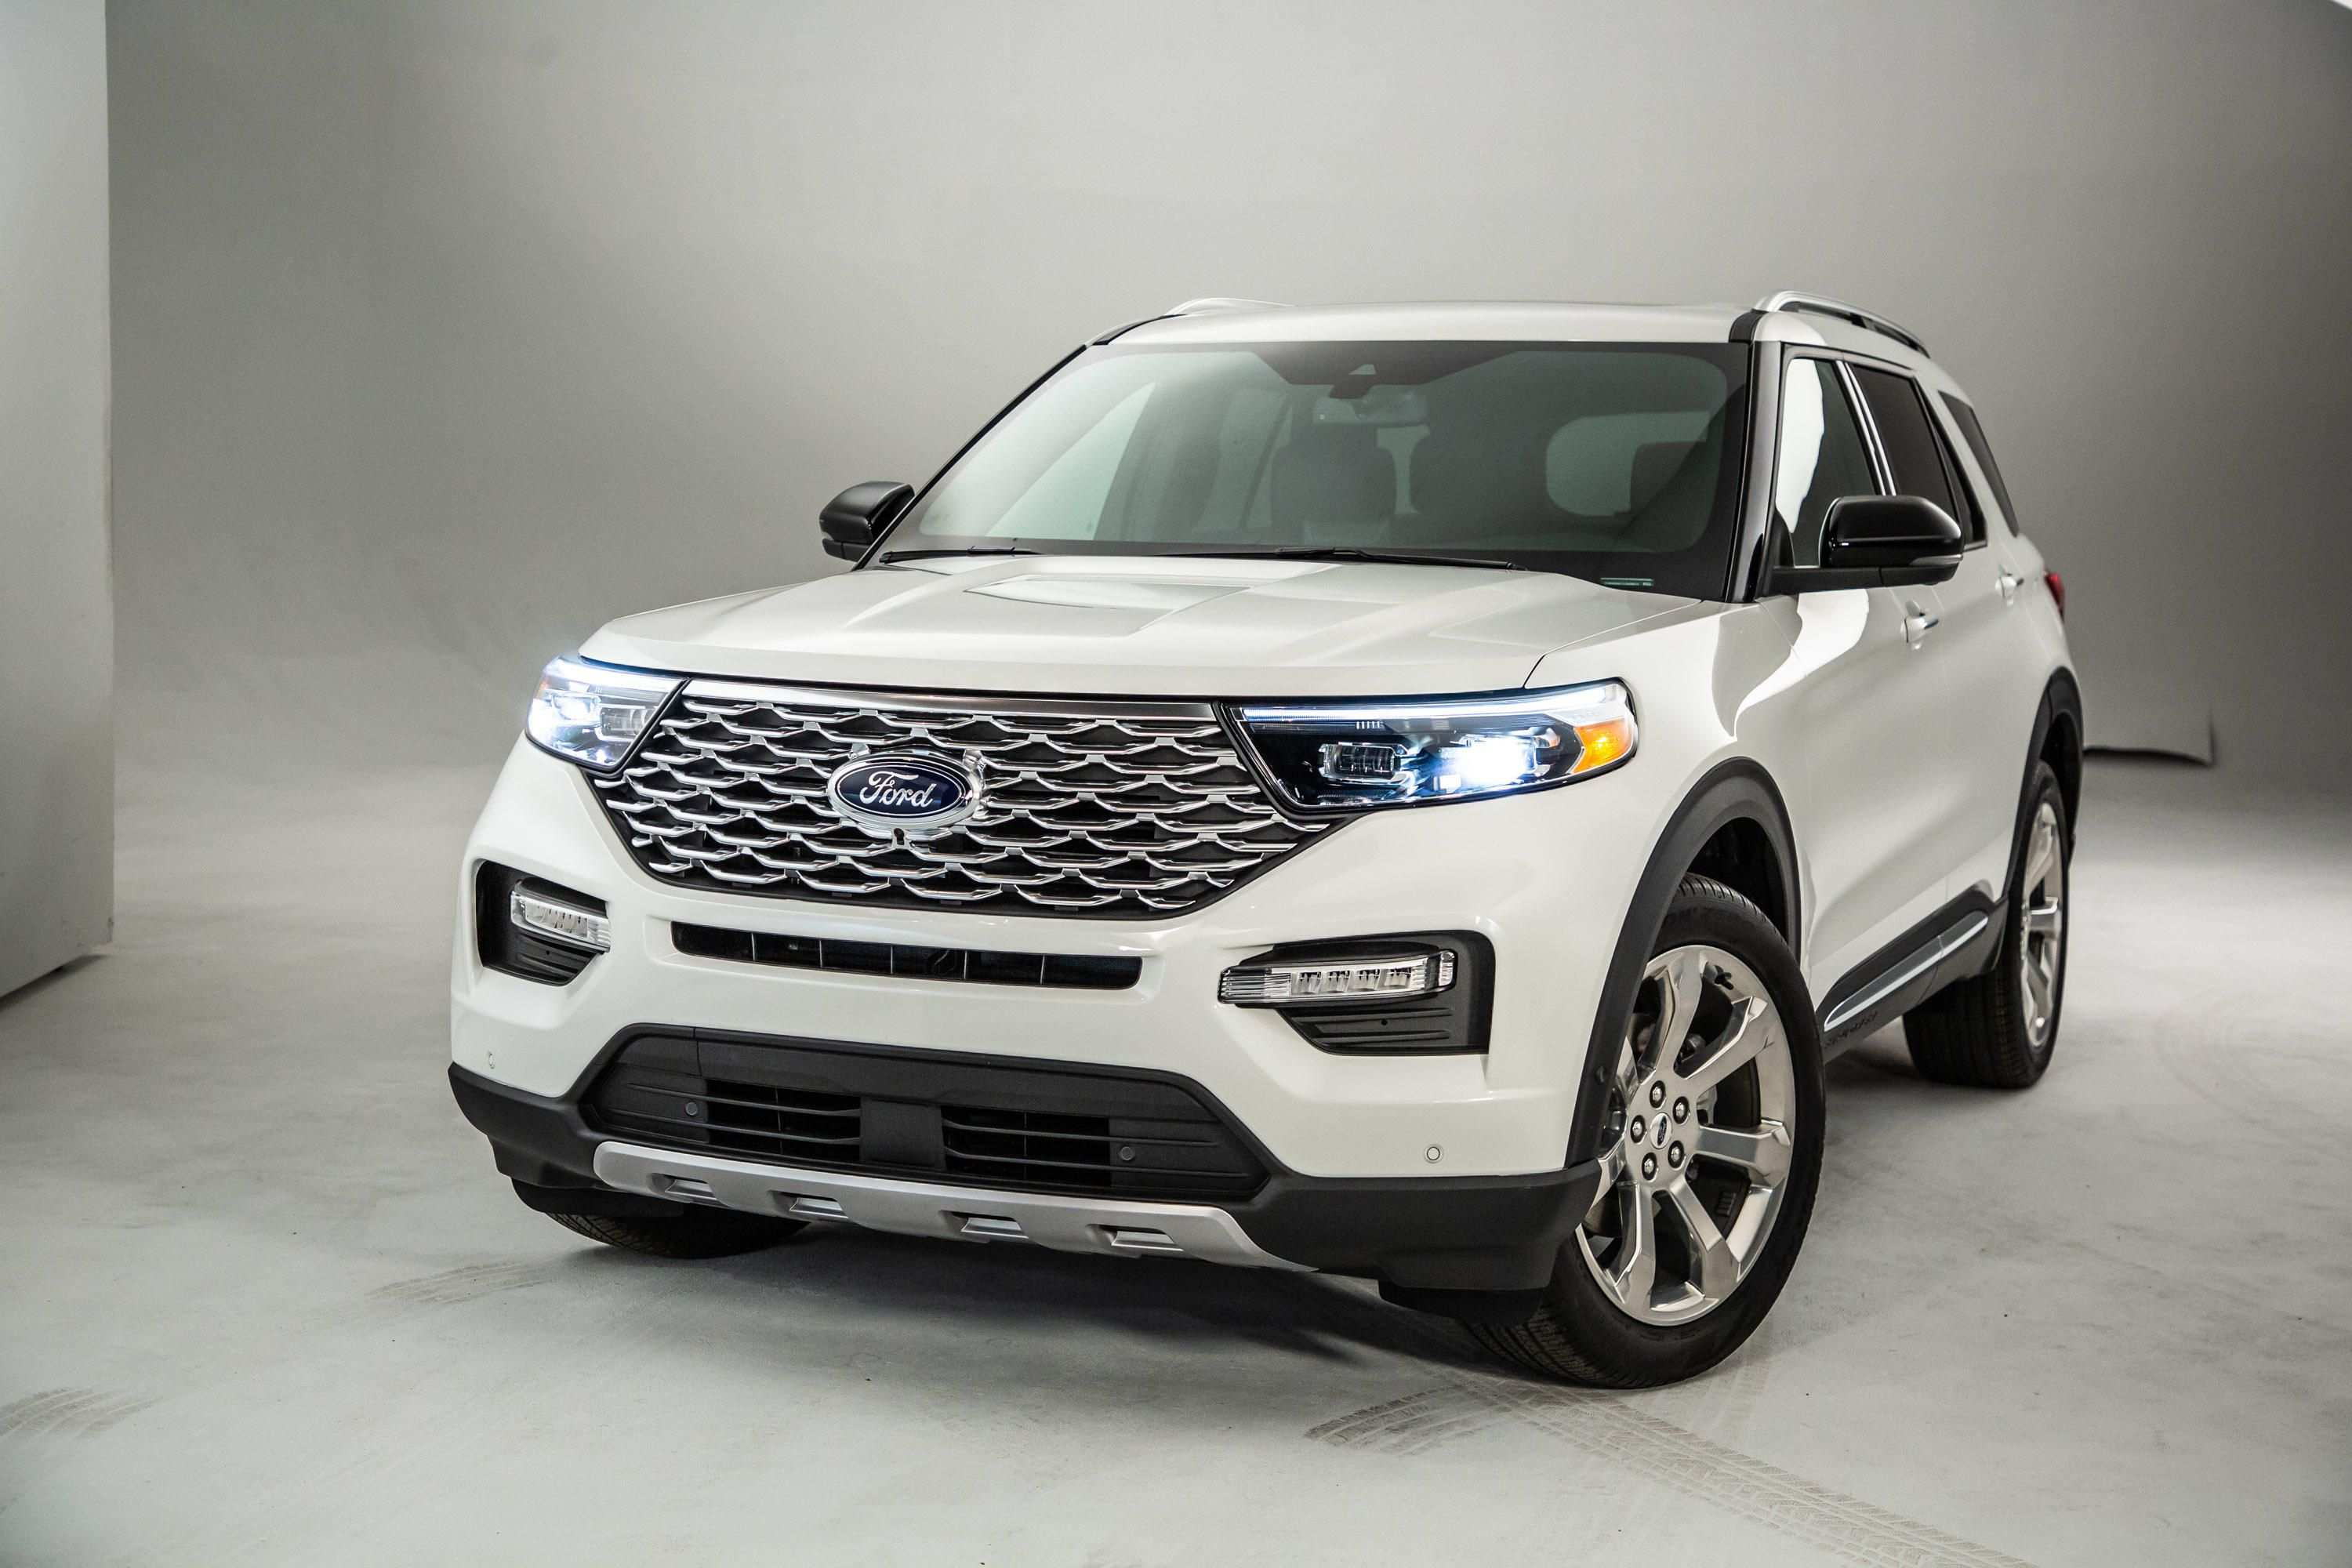 22 Best Review Ford New Explorer 2020 Specs and Review with Ford New Explorer 2020